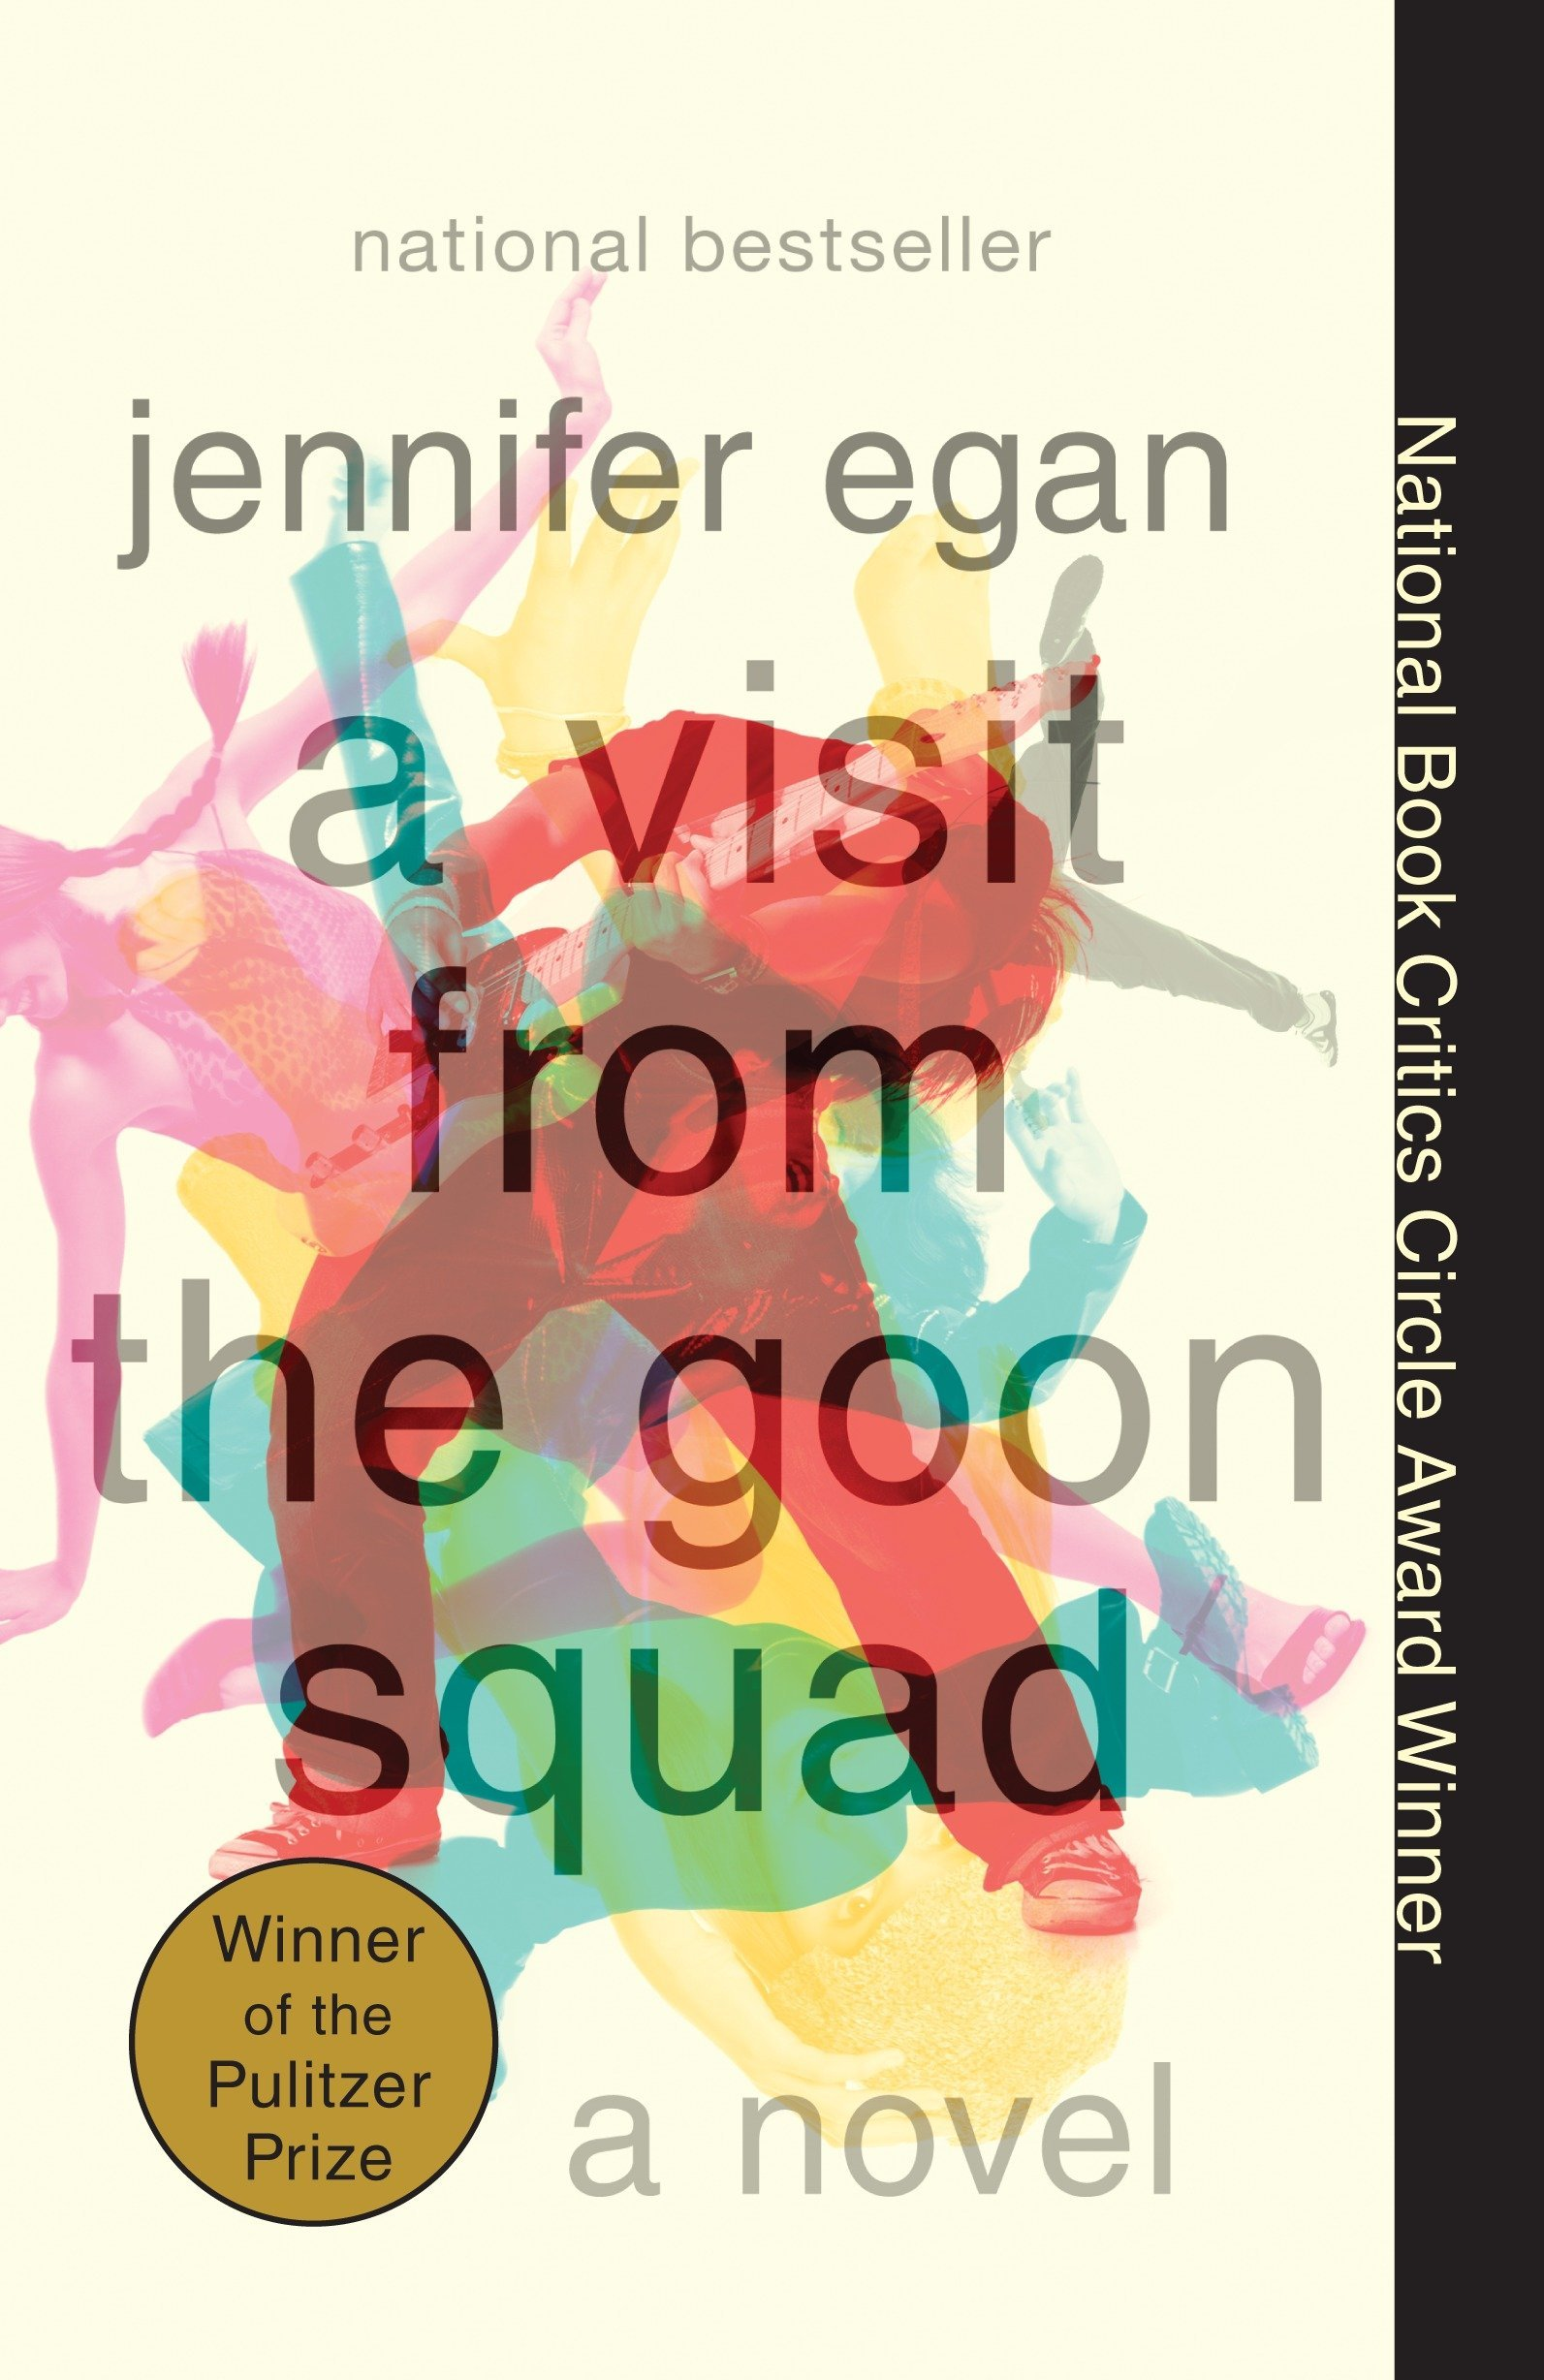 6) A Visit From the Goon Squad - The core of Jennifer Egan's A Visit From the Good Squad can be summed up by a single quote from the novel: